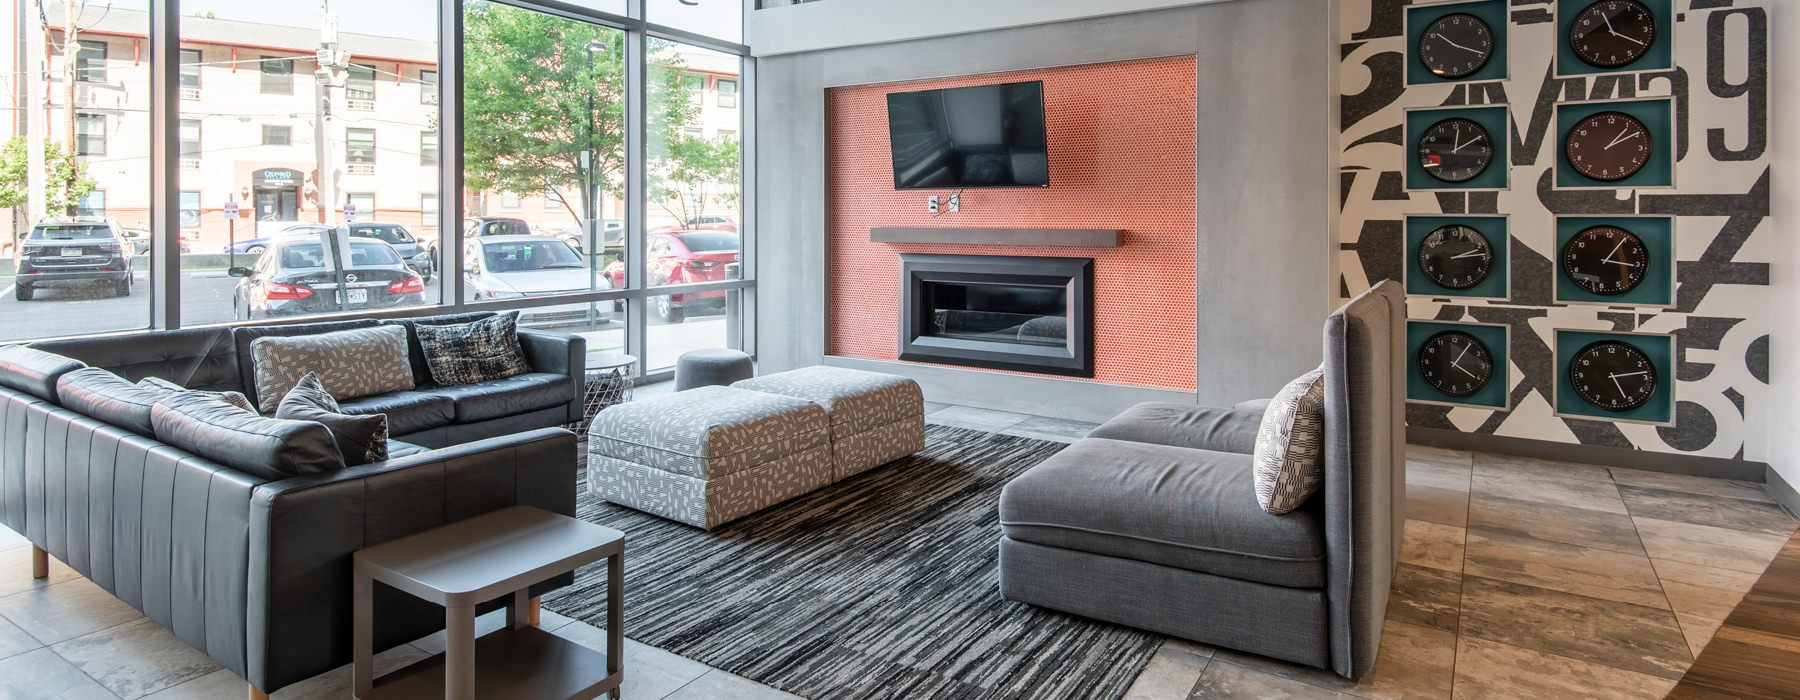 spacious resident lounge with fireplace and tv